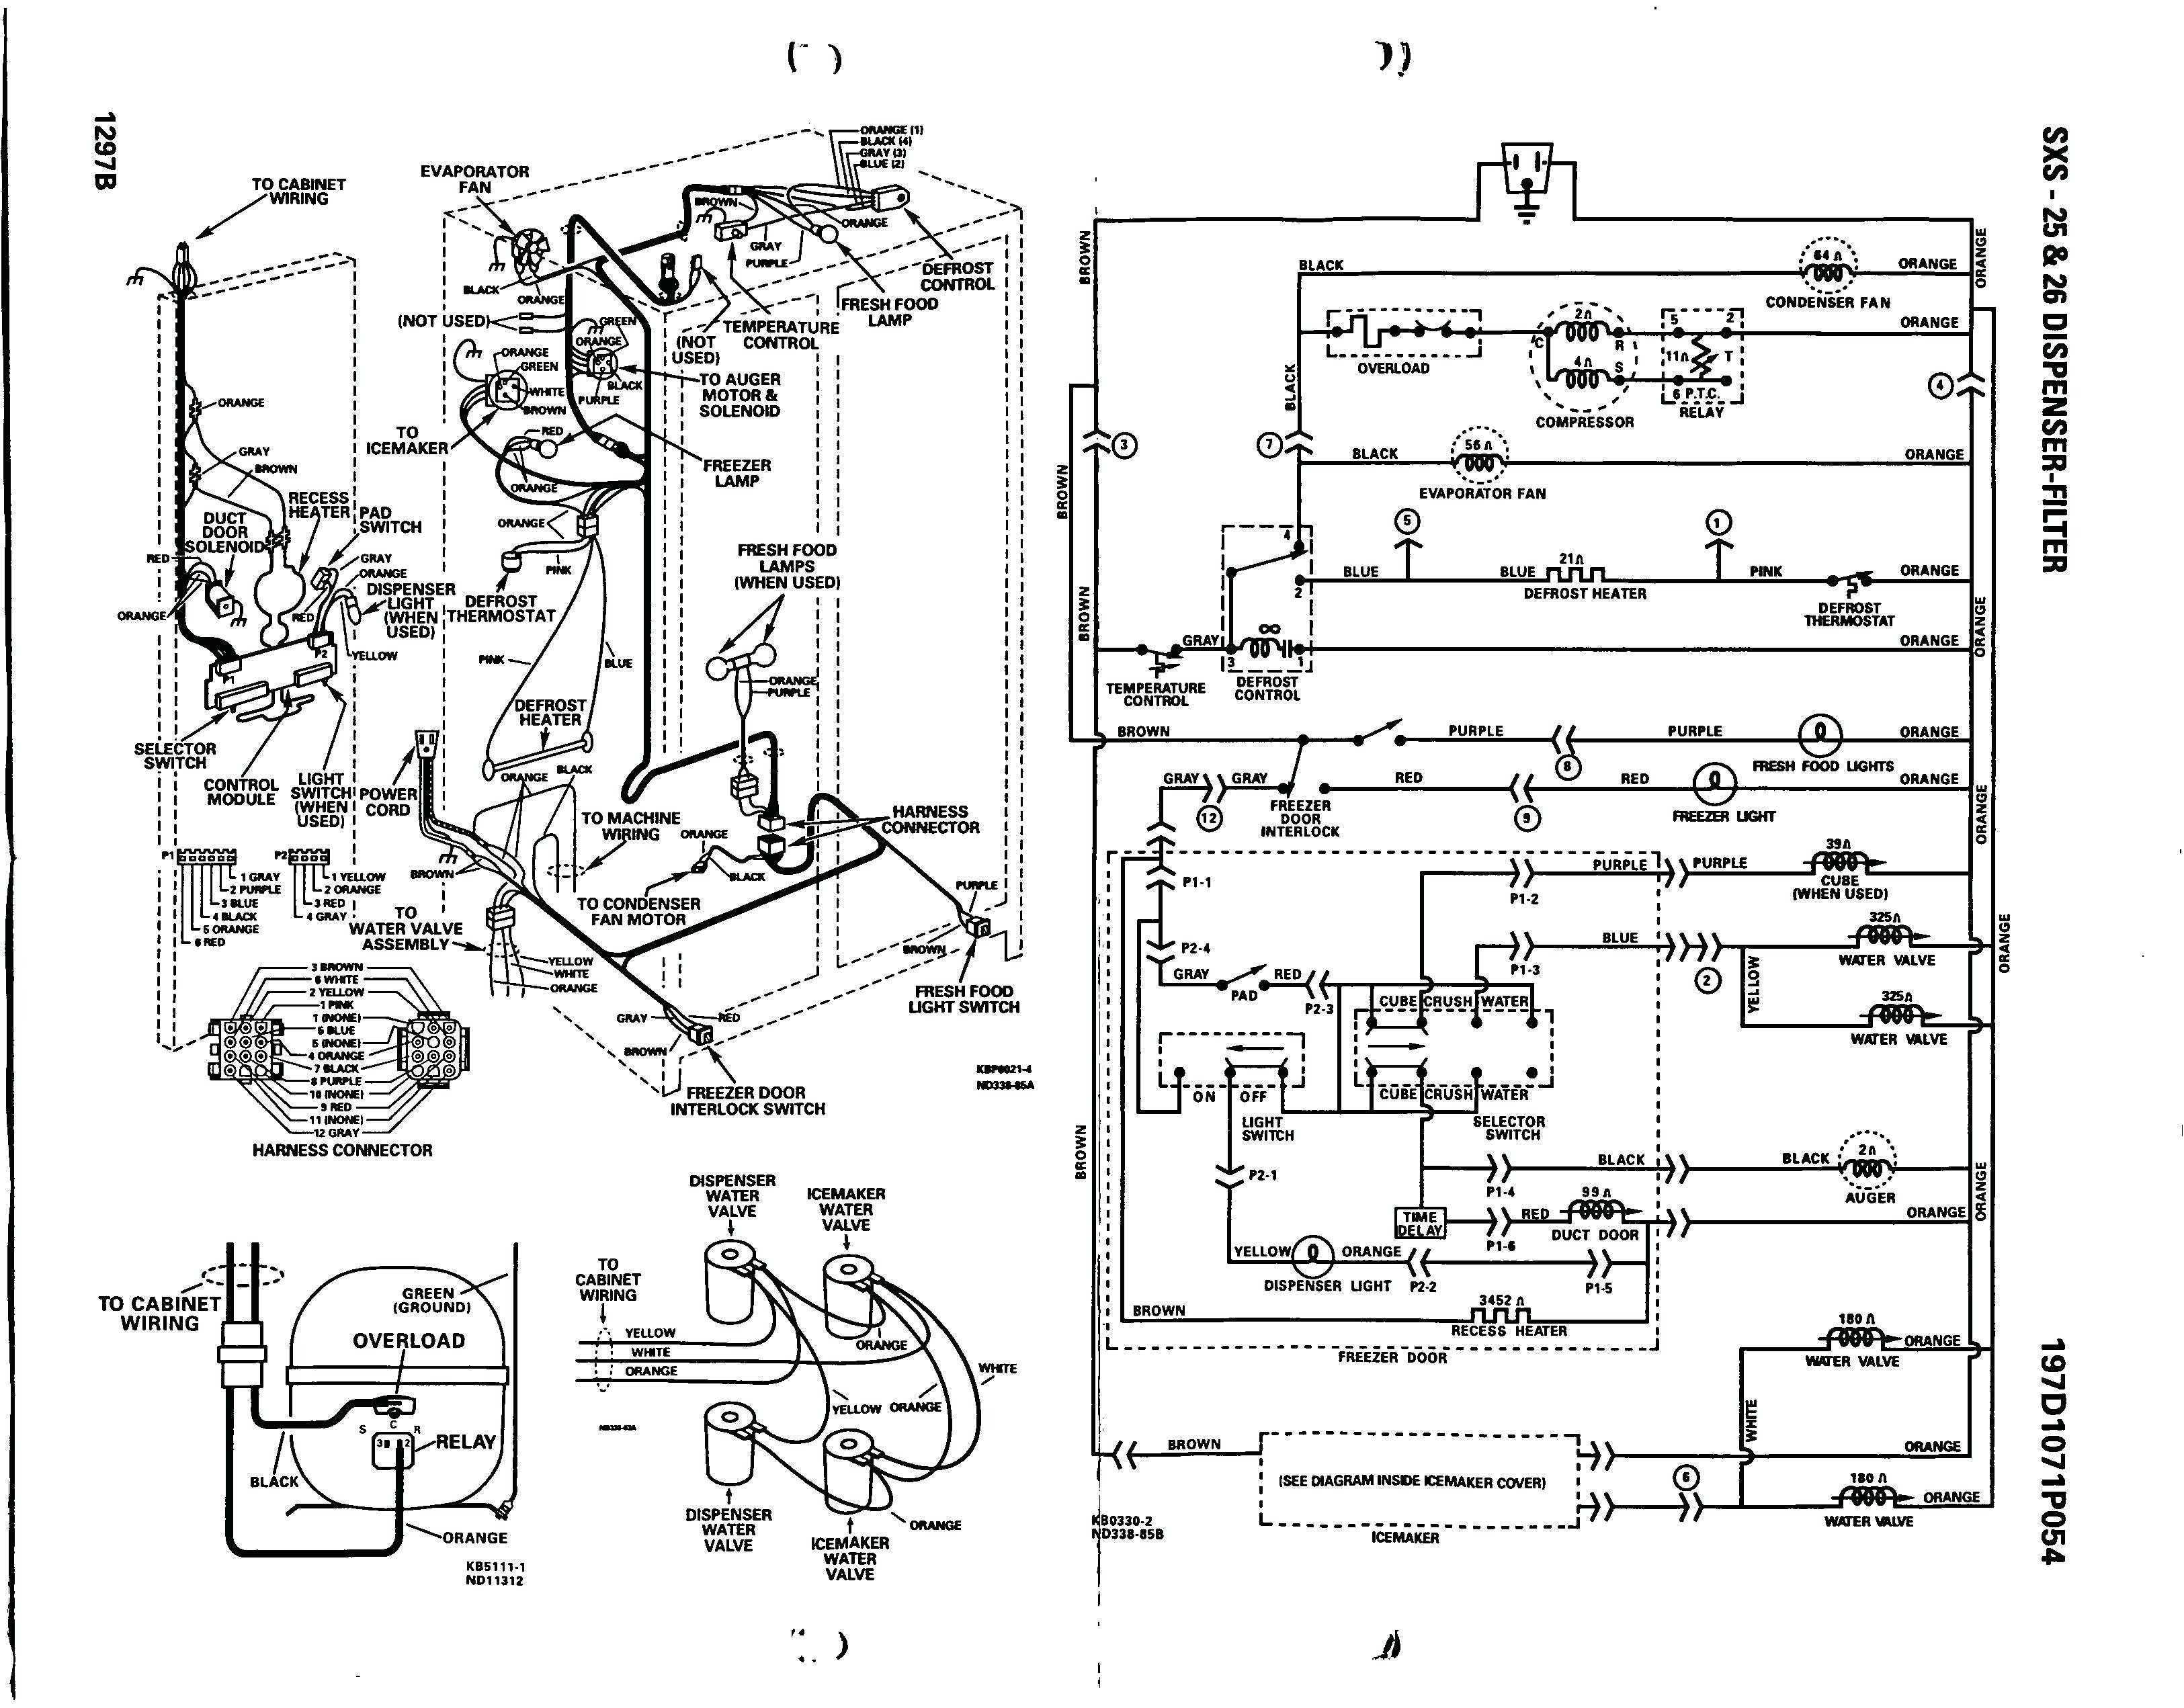 Automotive air conditioning diagram my wiring diagram automotive air conditioner wiring diagram electrical century ac motor 1 phase fan auto diagra automotive air conditioning wiring diagram asfbconference2016 Images